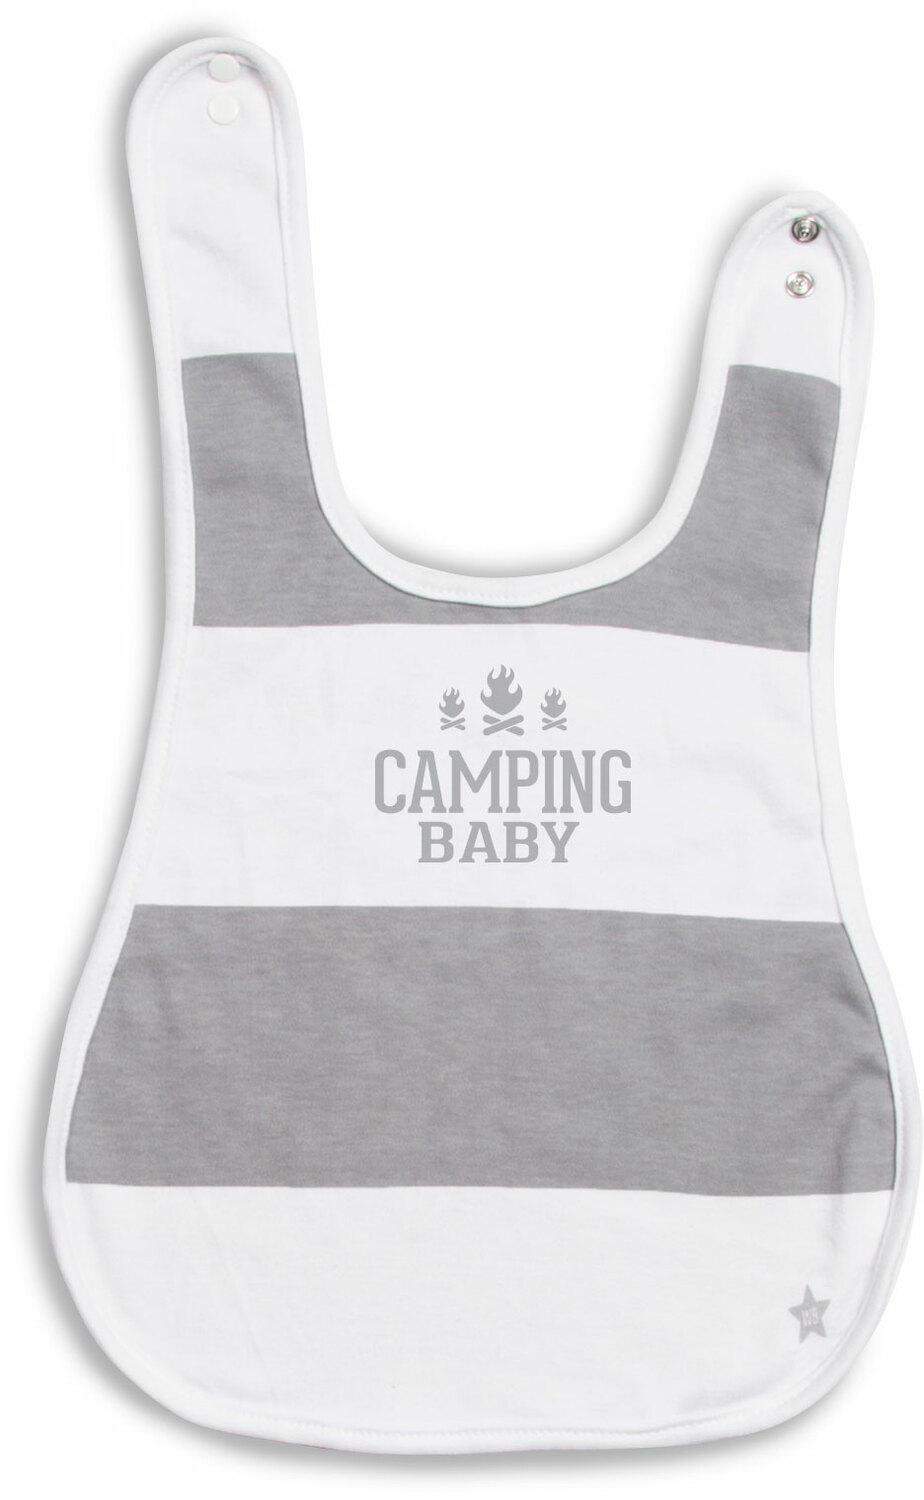 Camping Baby by We Baby - Camping Baby - Reversible Bib (6M - 3 Years)